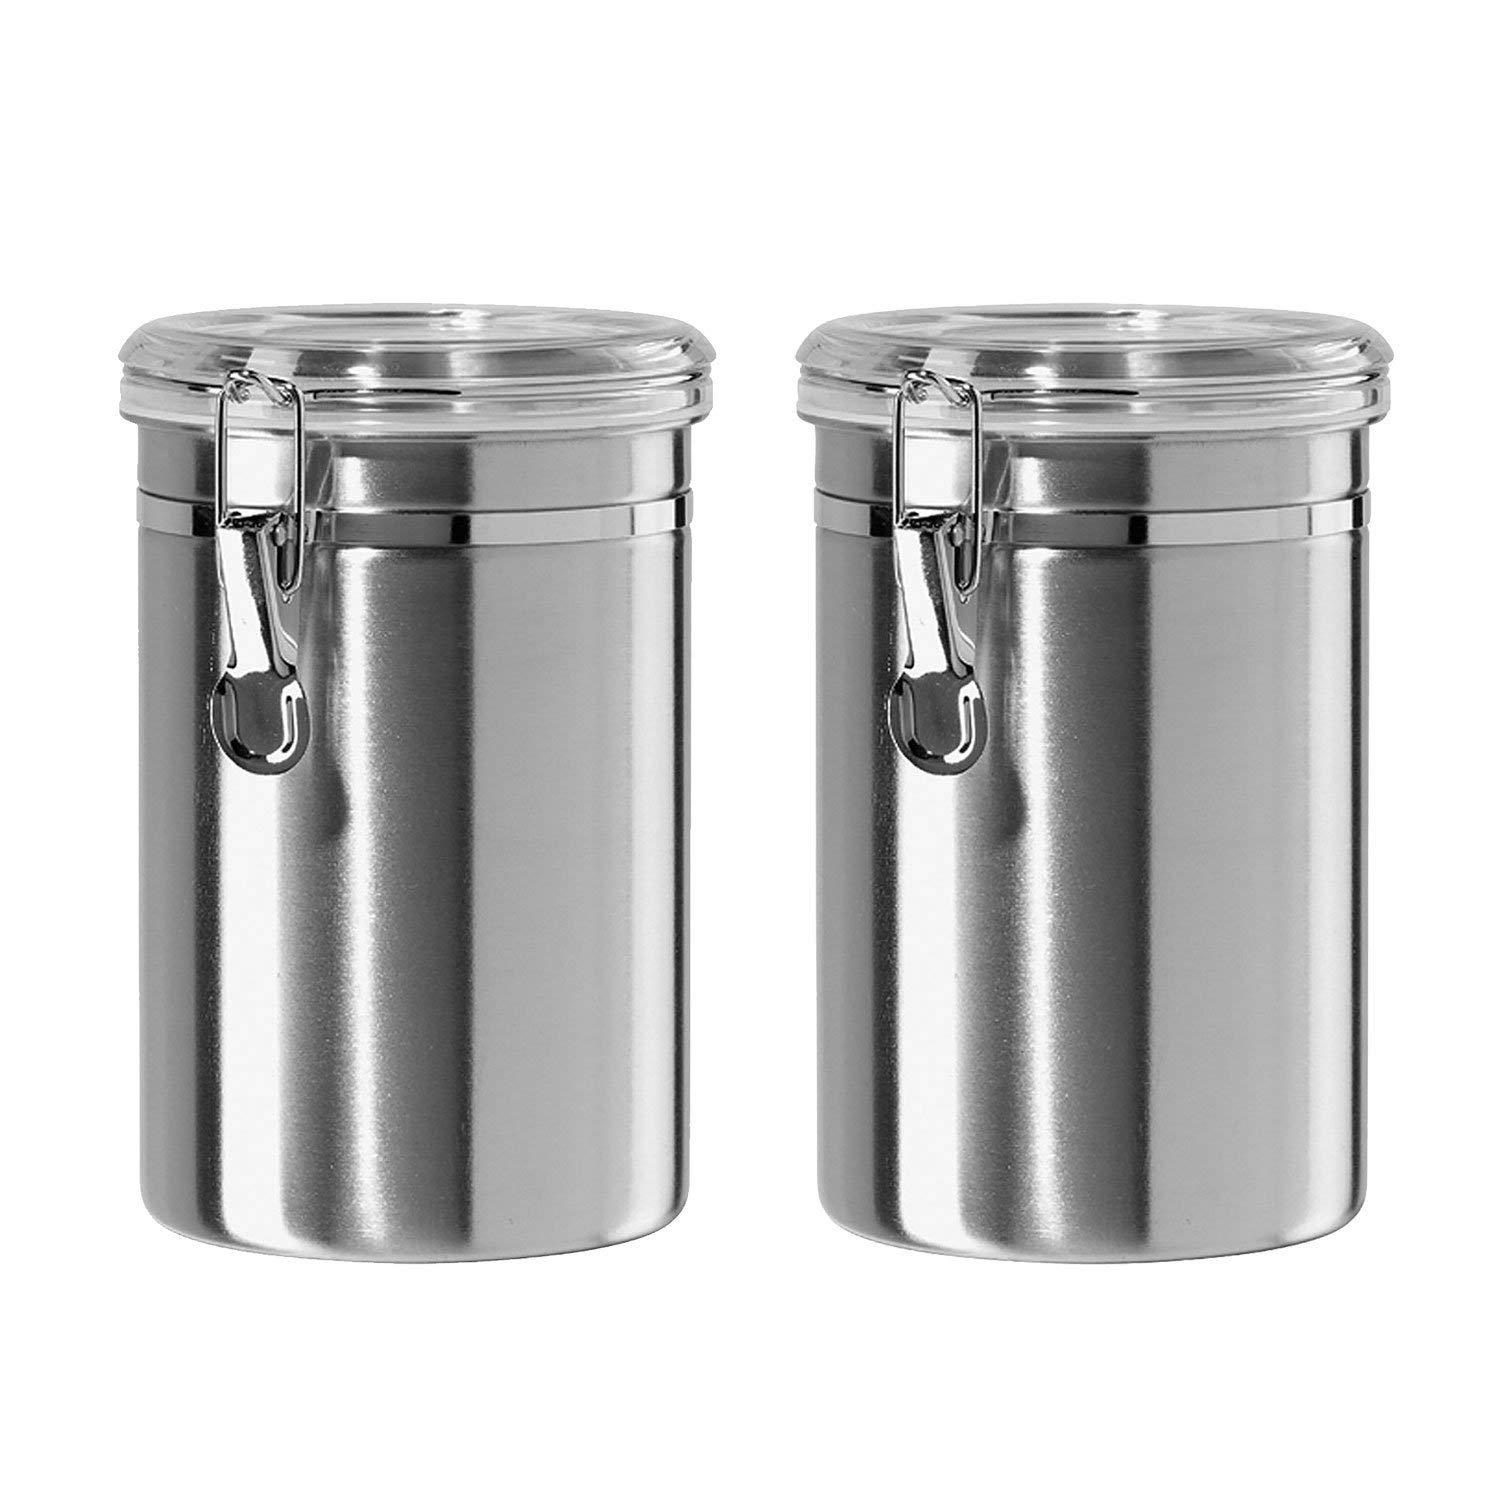 Airtight Canisters Sets for the Kitchen Stainless Steel - Beautiful for  Kitchen Counter, Small 32oz, Food Storage Container, Tea Coffee Sugar